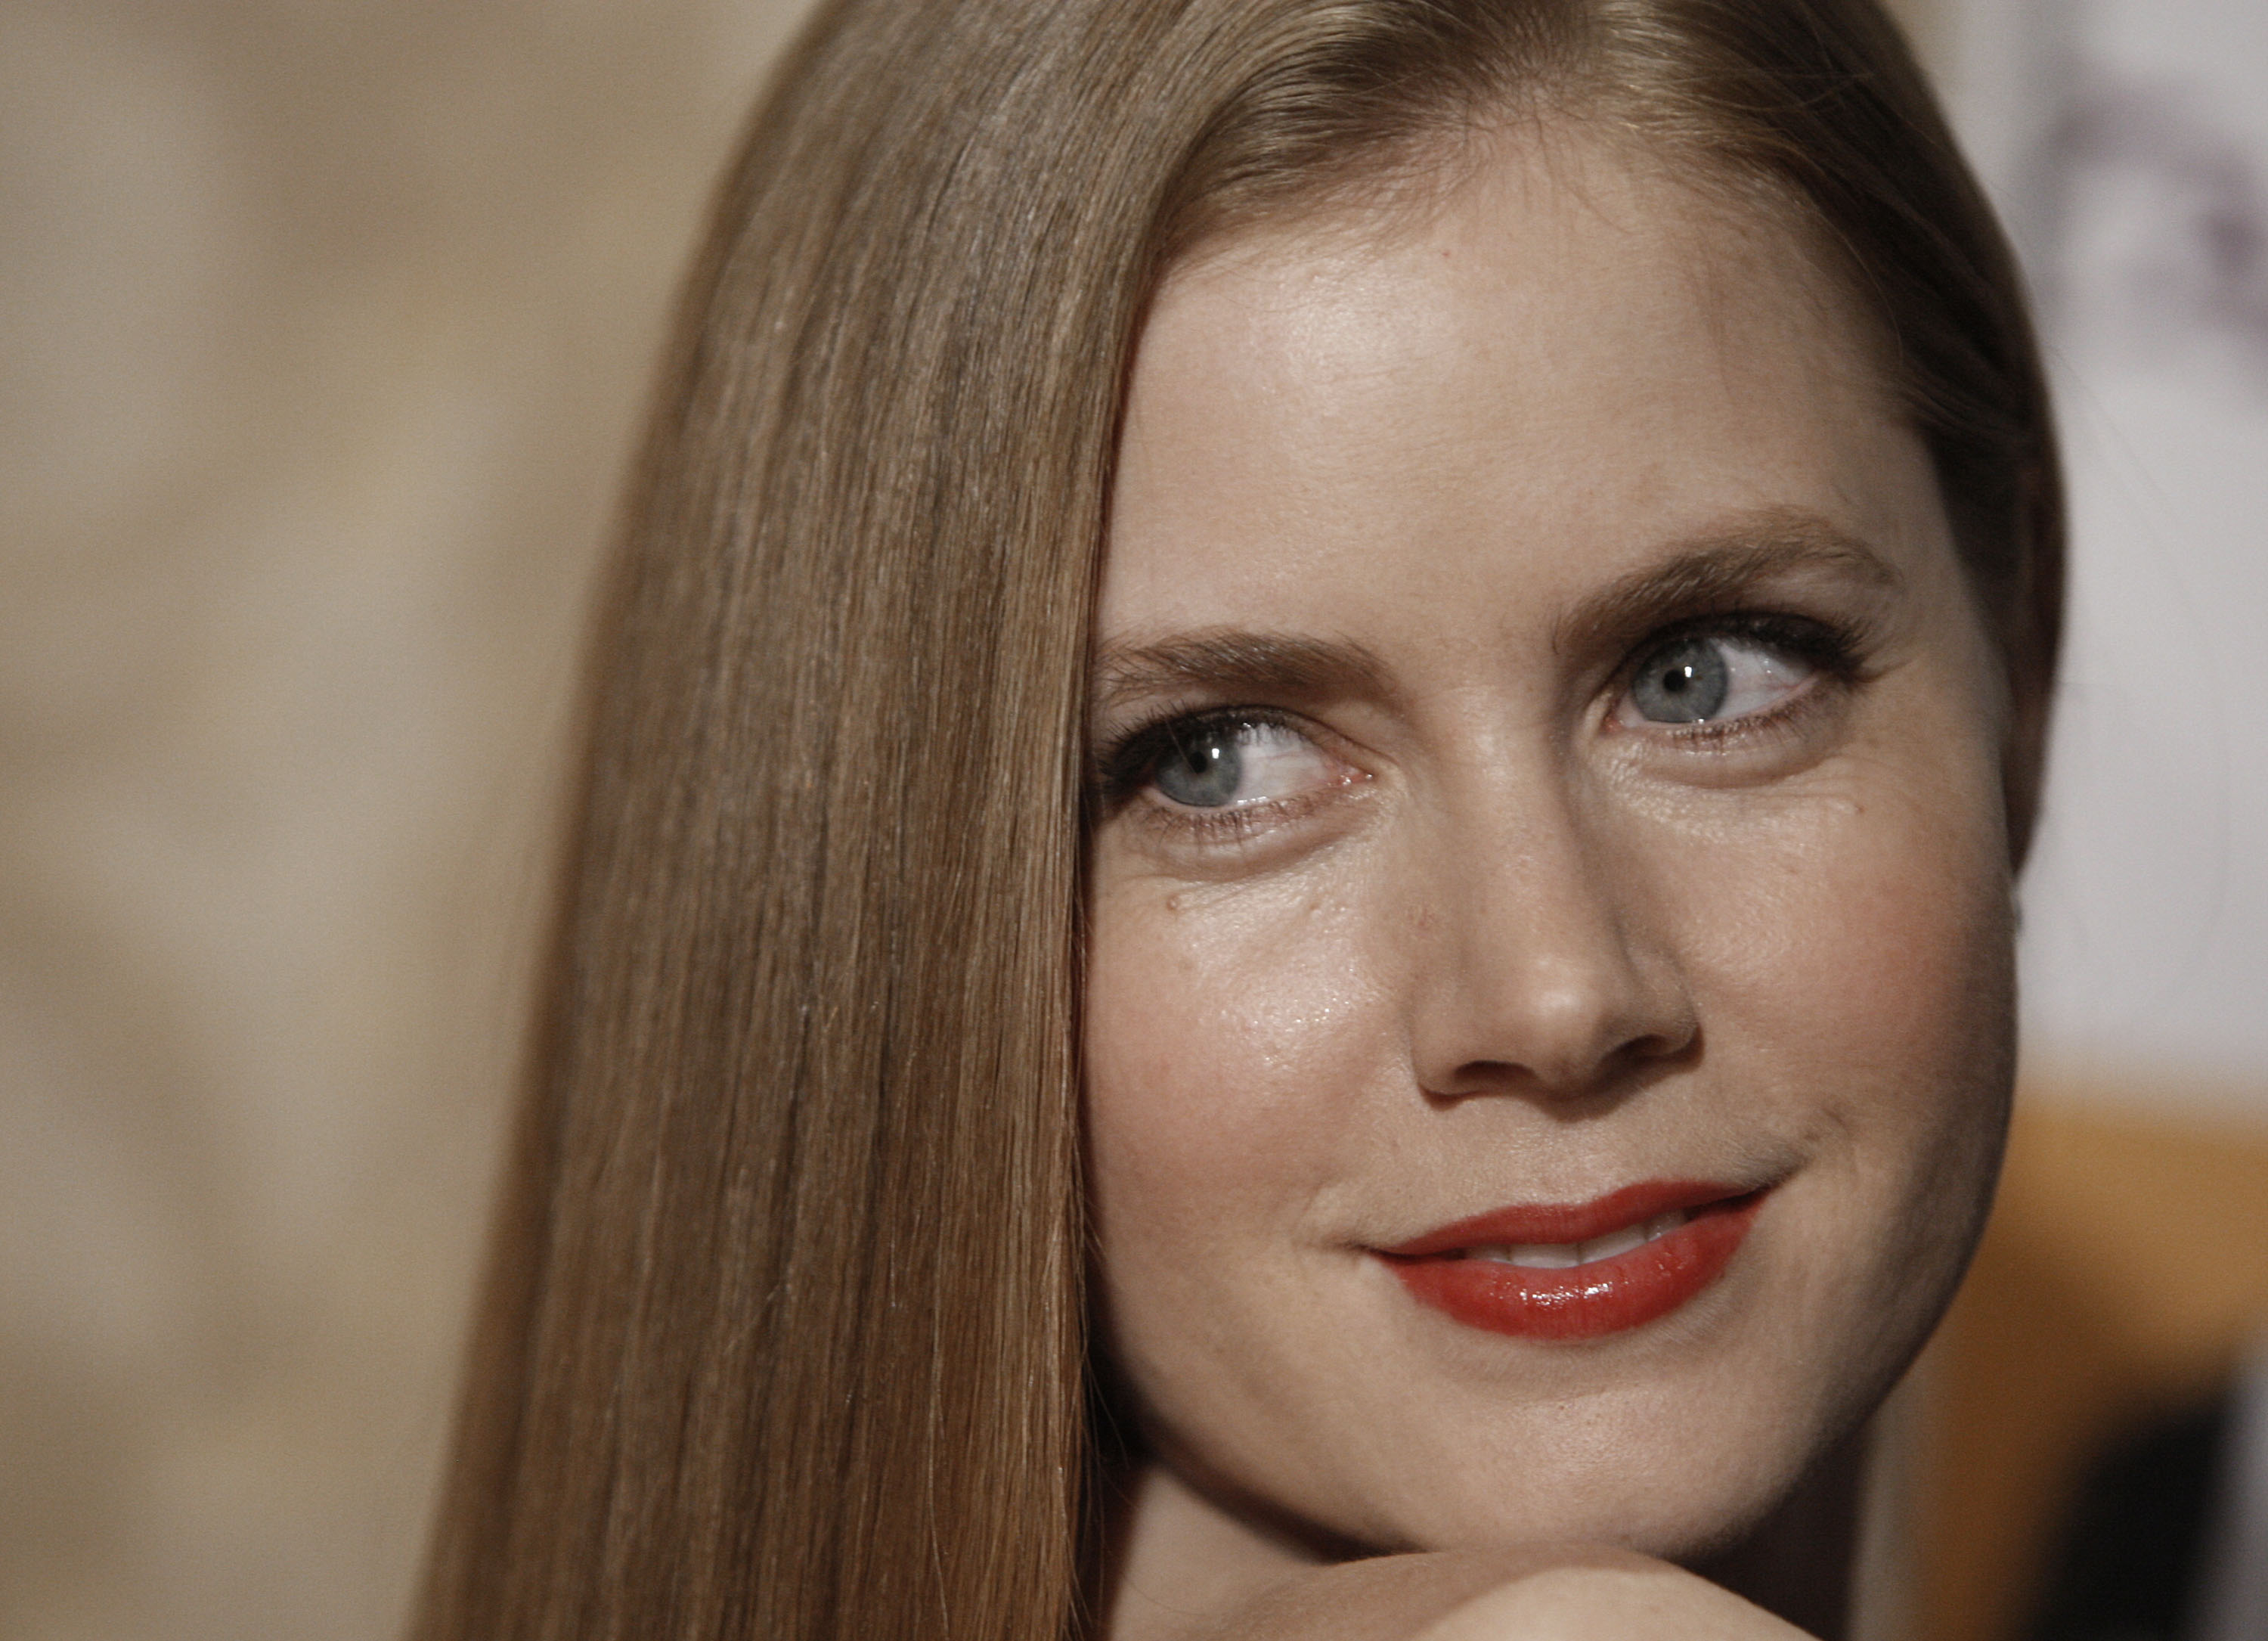 Hd Amy Adams Excellent Pose Laptop Free Background Download Photo